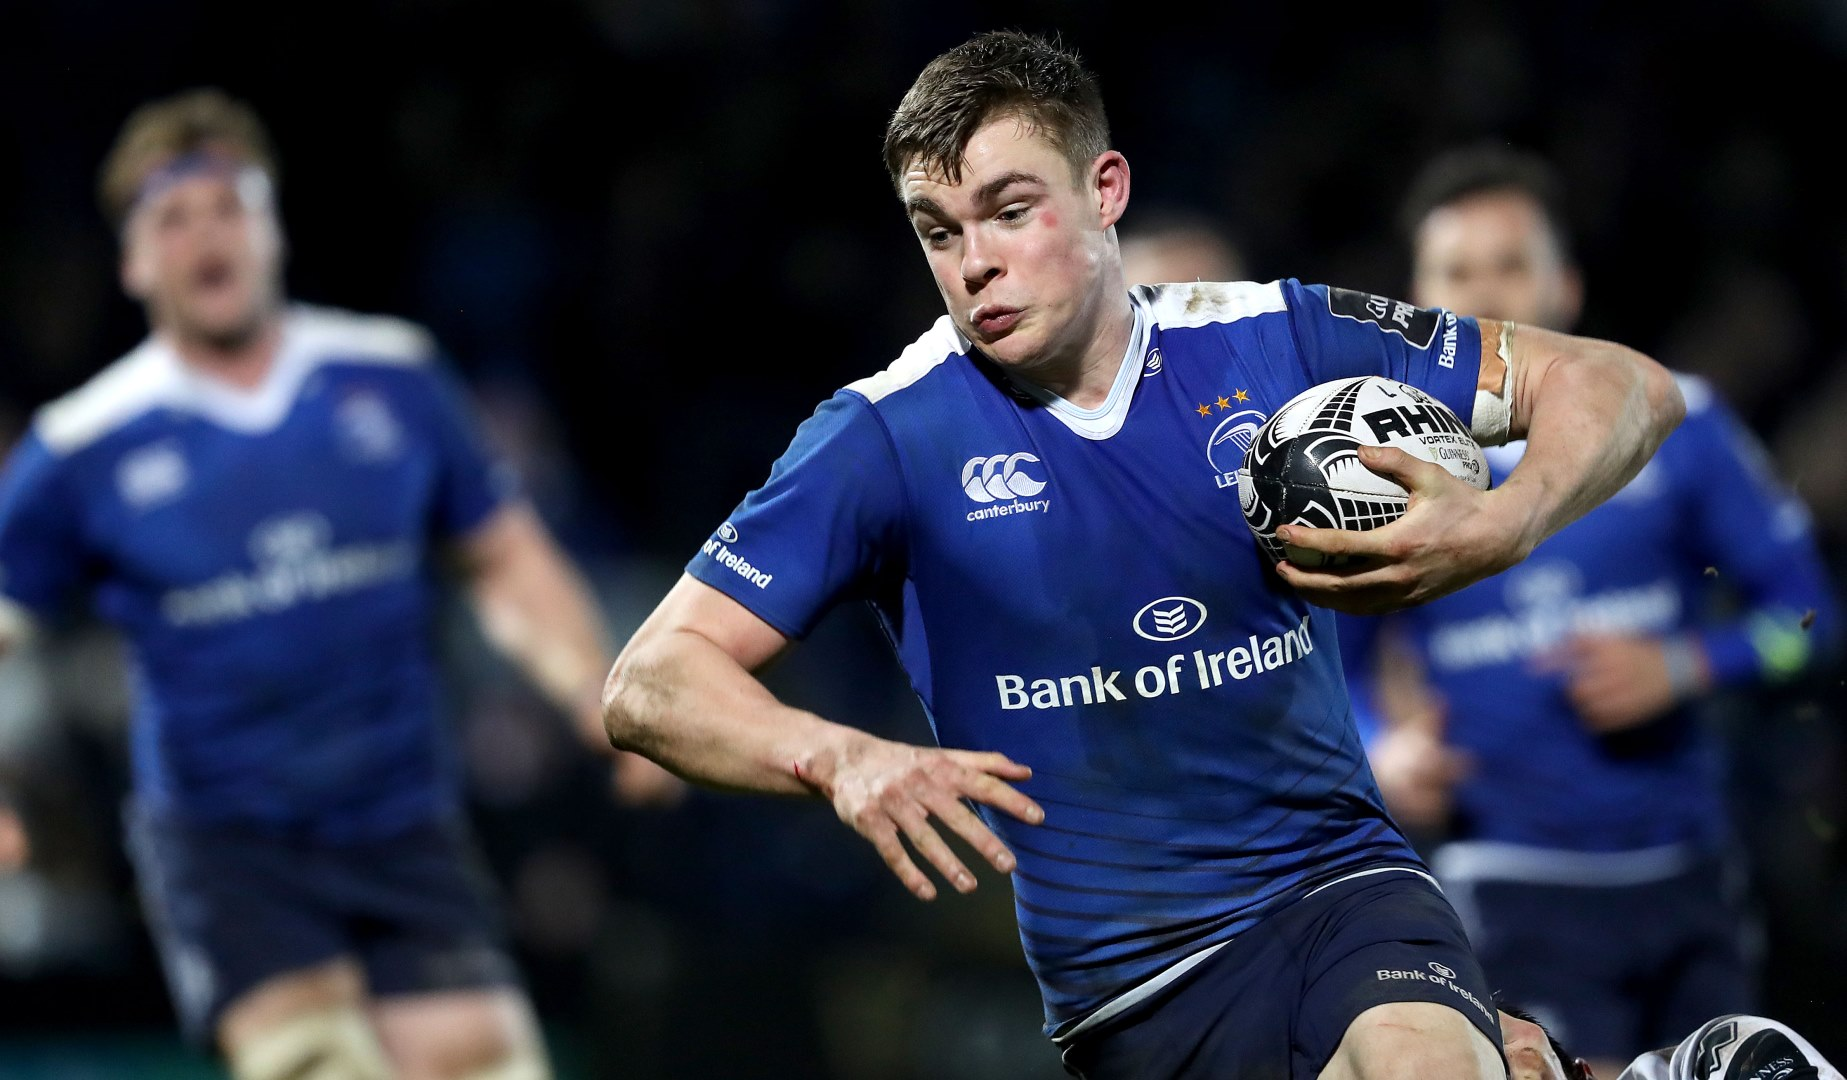 LionsWatch: European action returns with a bang at the RDS